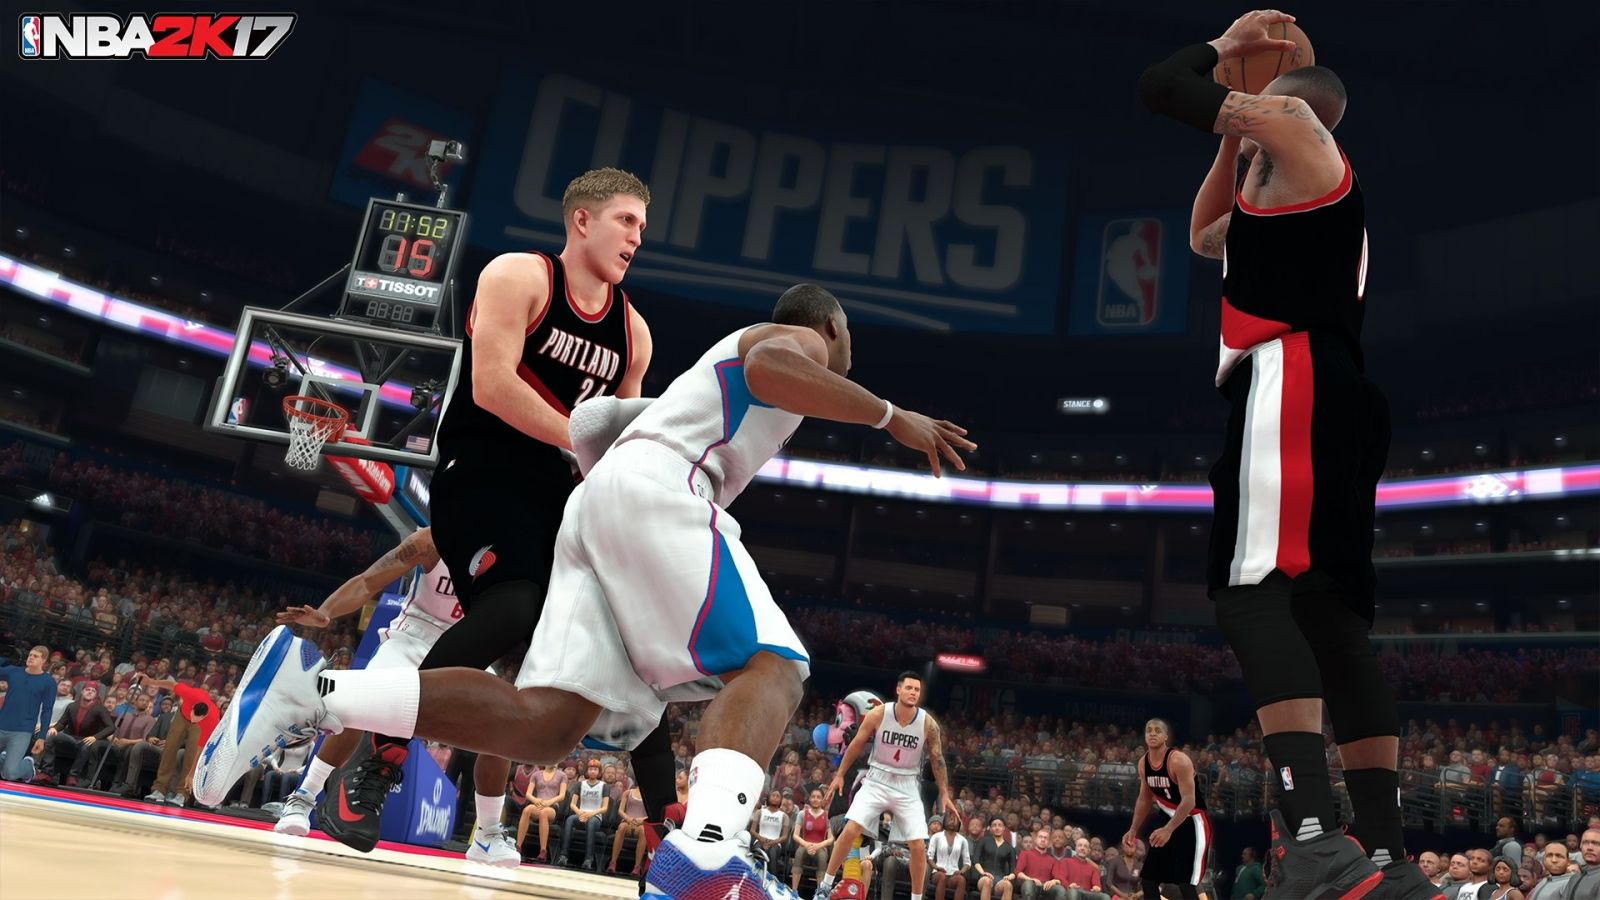 NBA 2K17 Patch 12 Is Available On PS4 And XBOX One Now